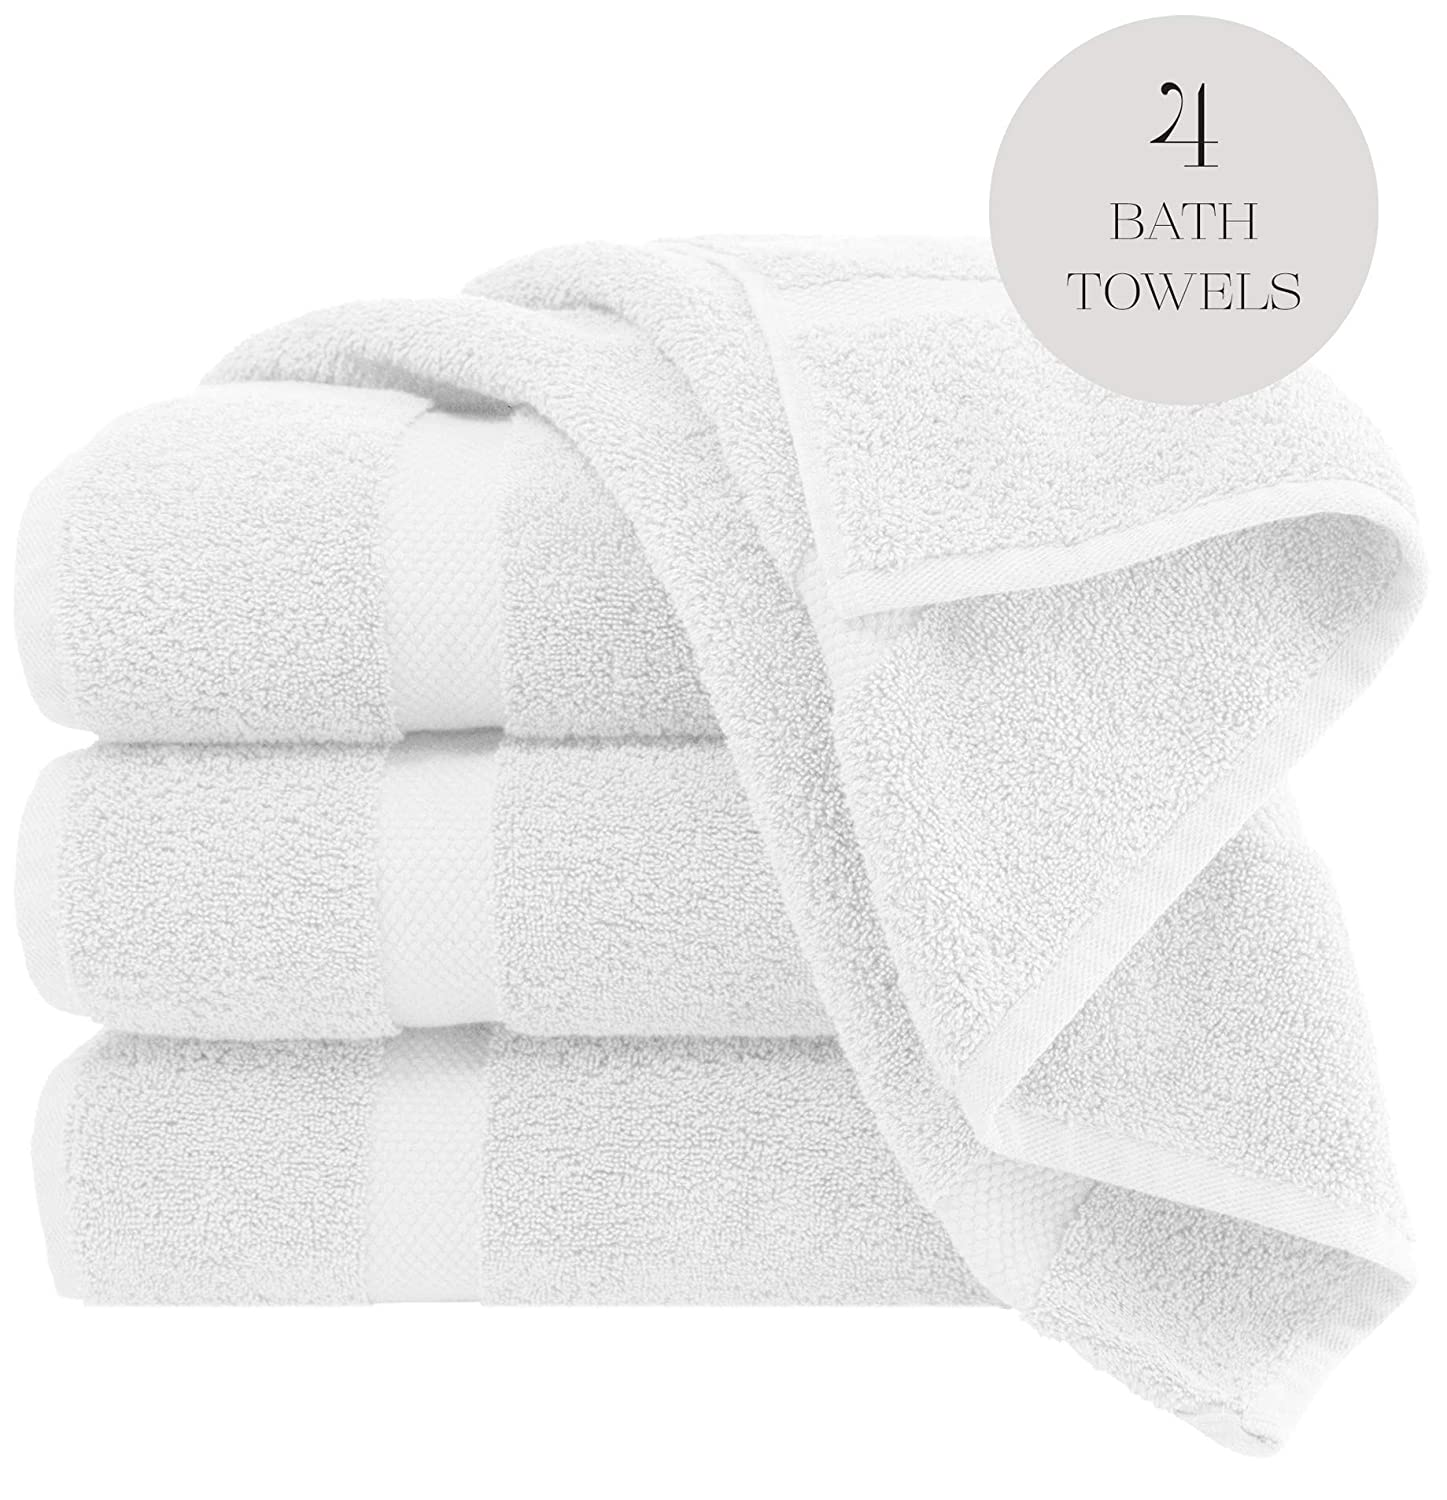 Best Bath Towels Consumer Report: Reviews Of Top Rated